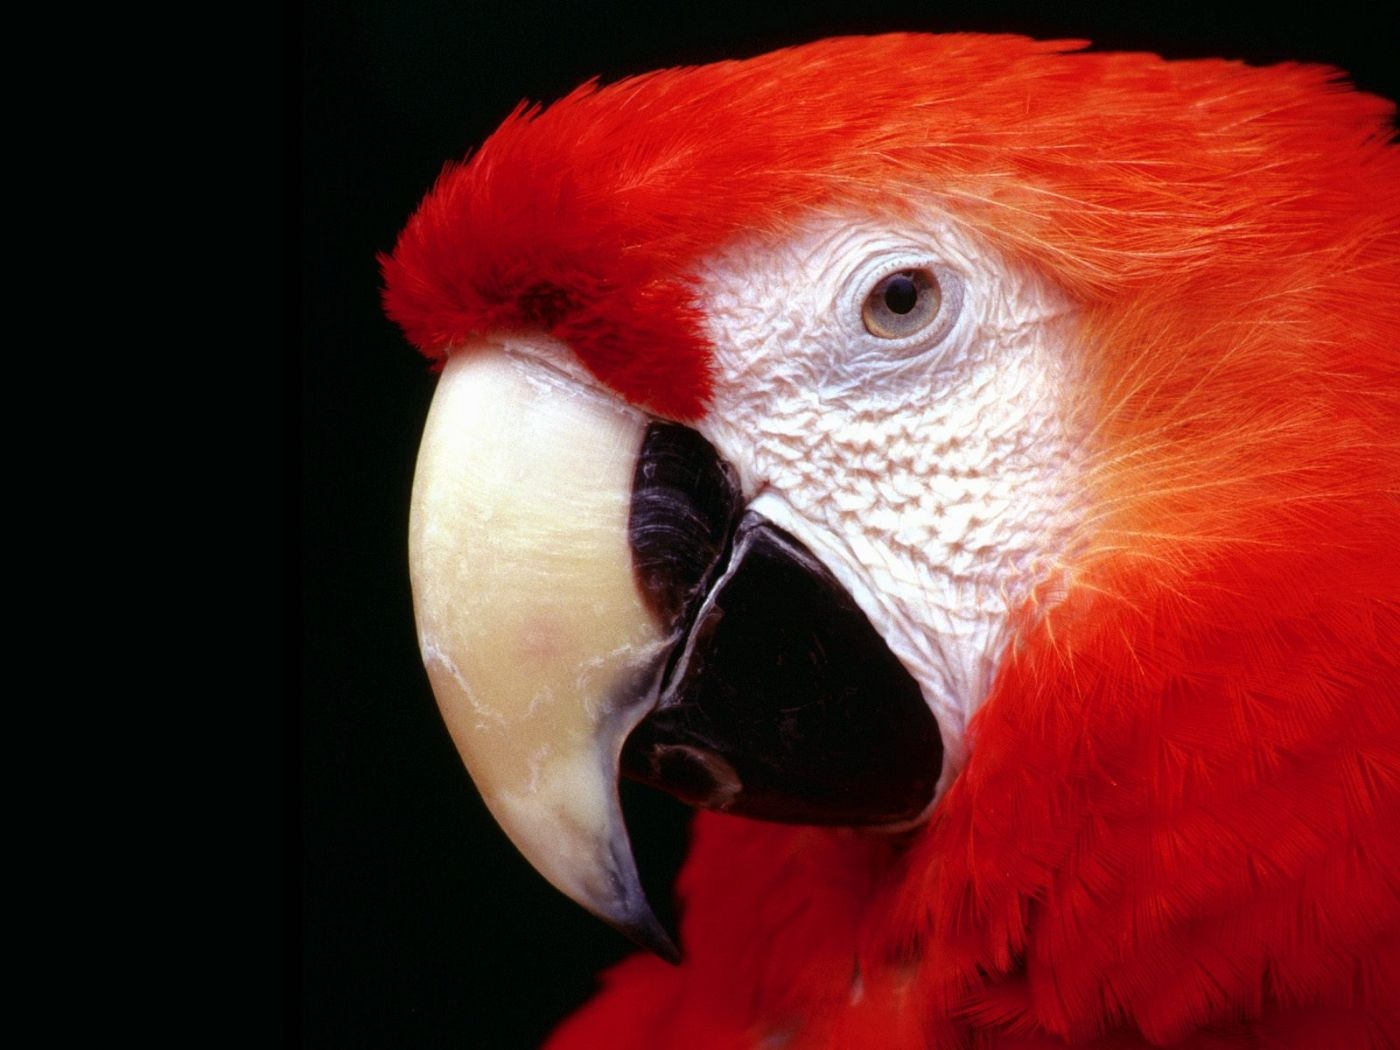 Red Macaw Face Close Up Wallpaper 1400x1050